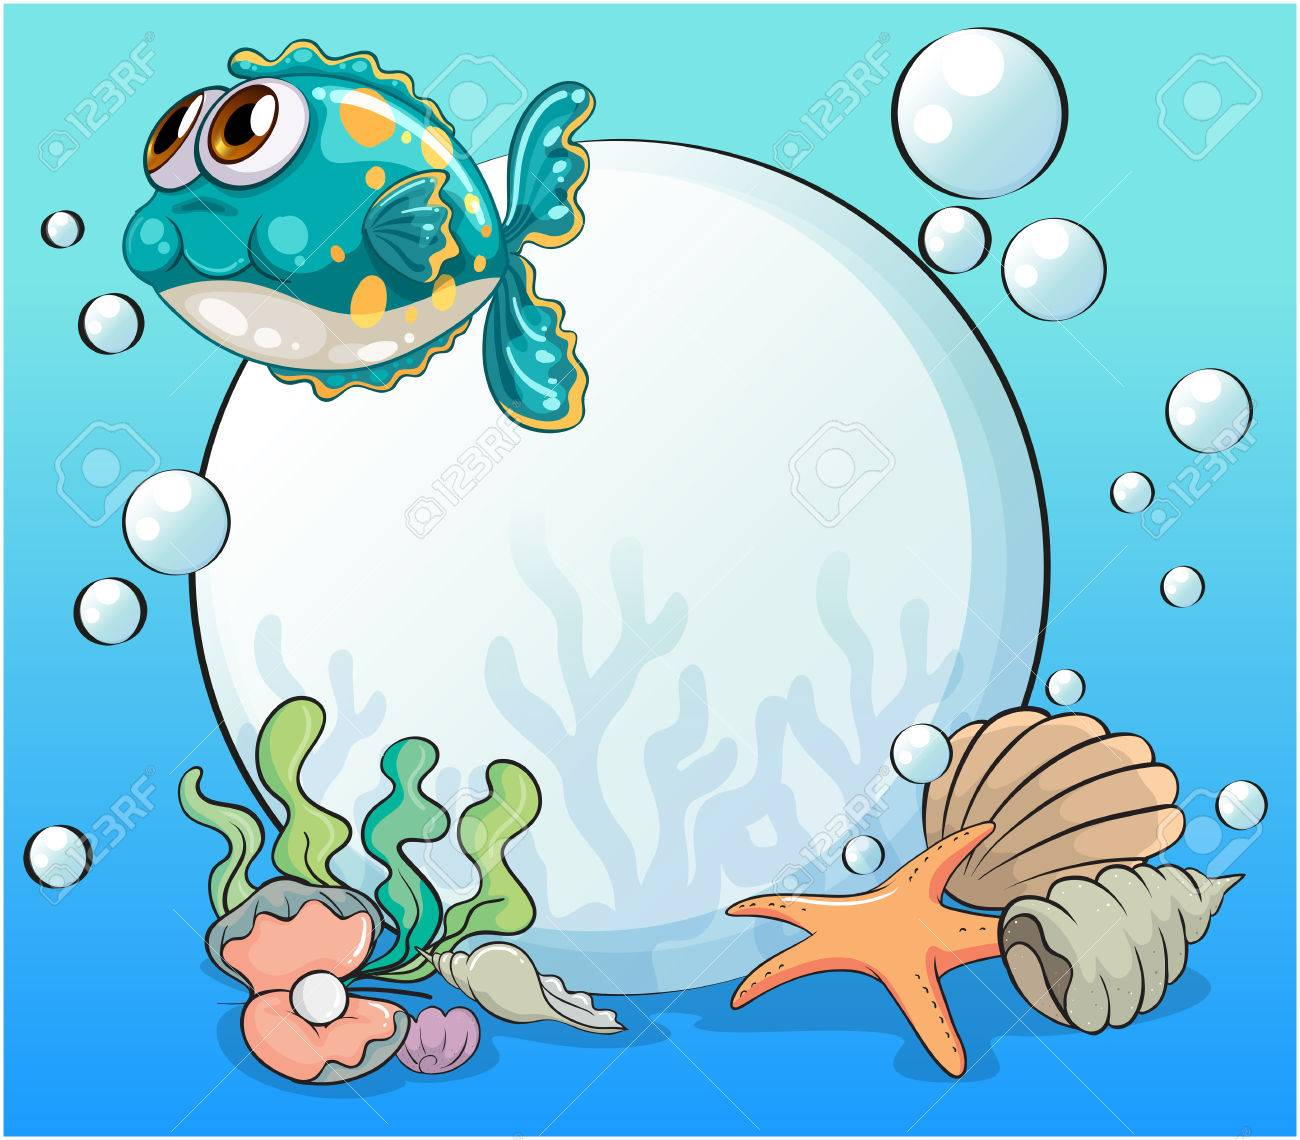 illustration of the sea creatures under the sea royalty free